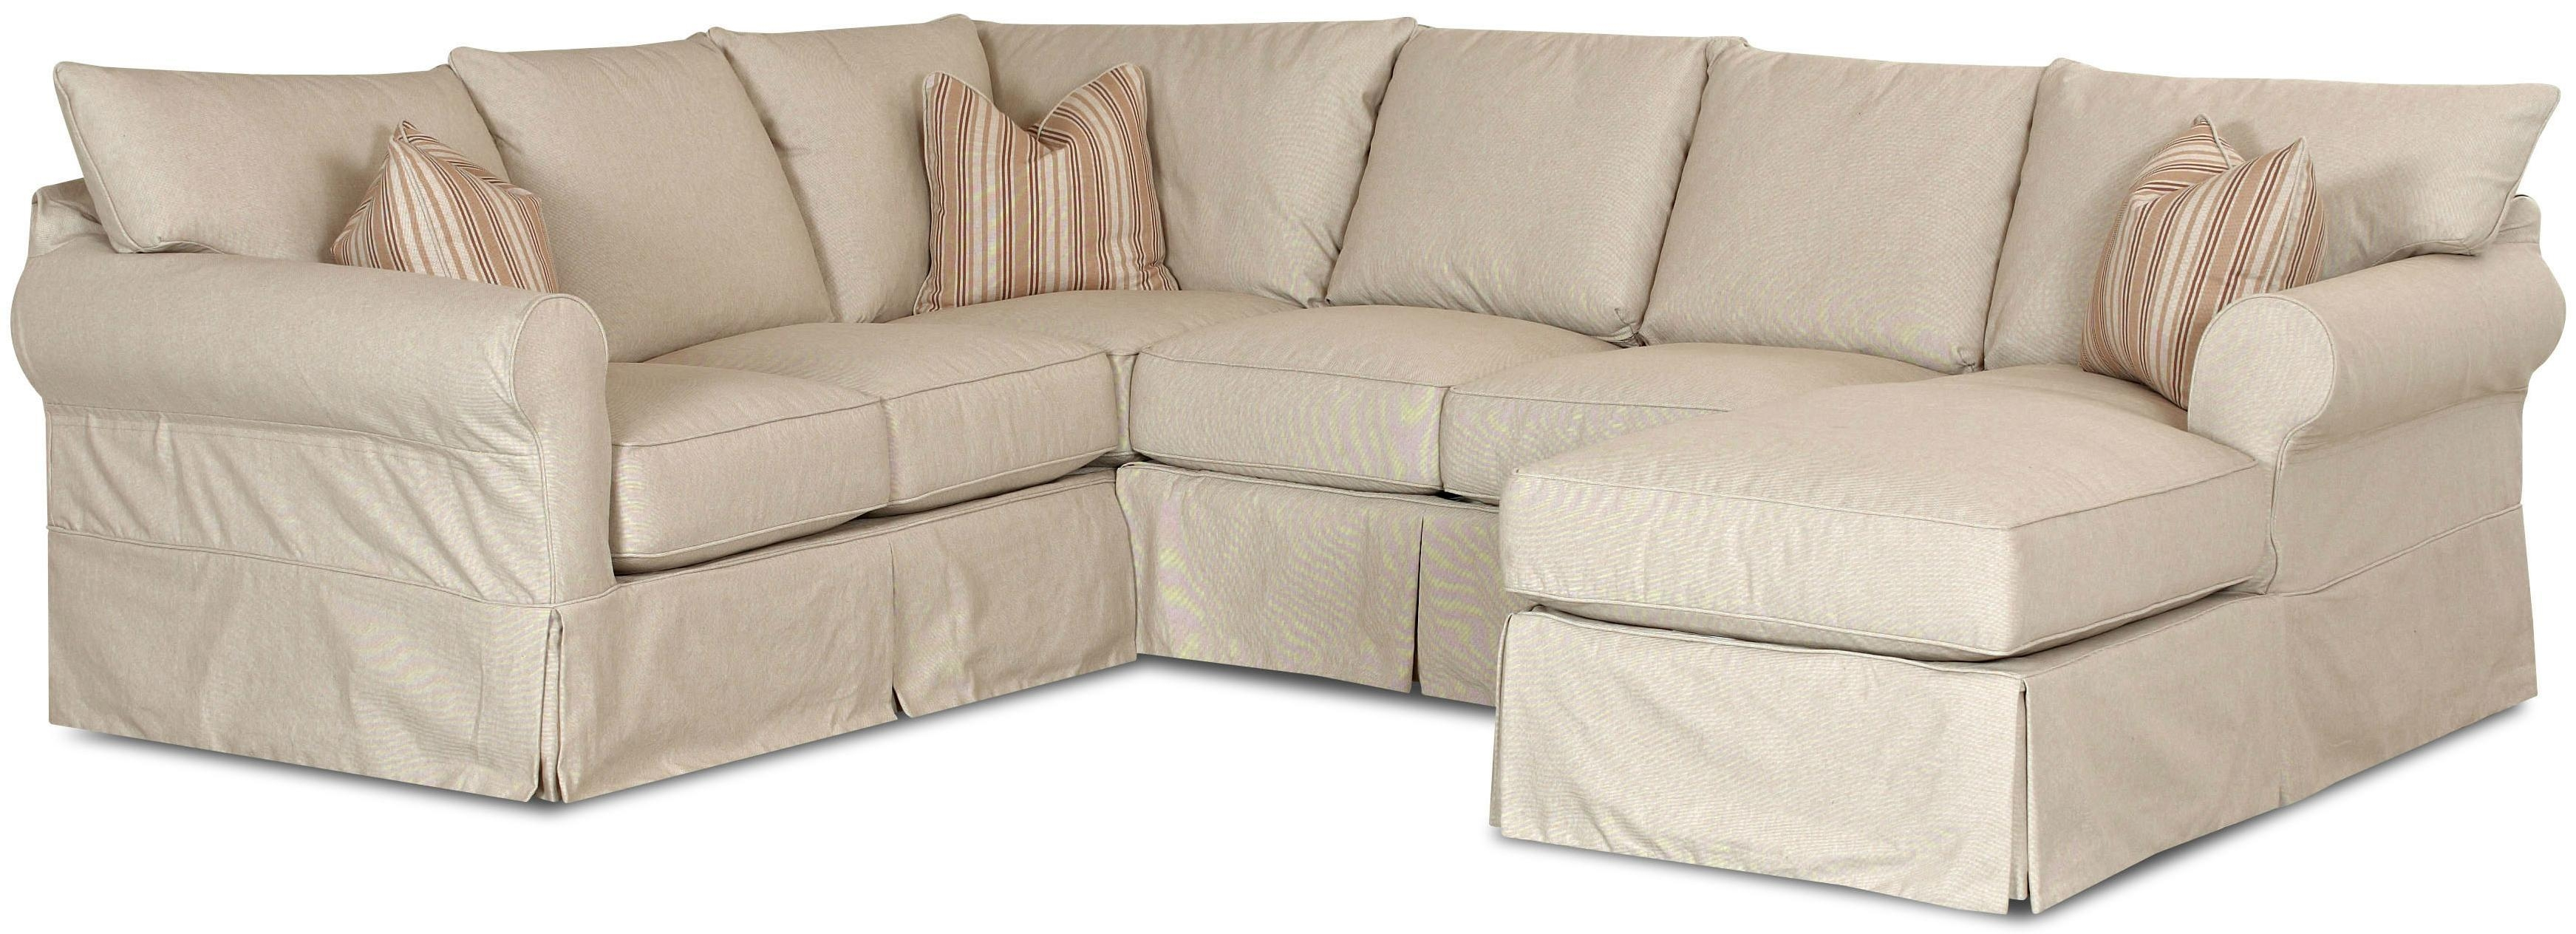 Furniture: Slip Covers For Sectional Couches | Couch Slip Covers Throughout Large Sofa Slipcovers (Image 5 of 23)